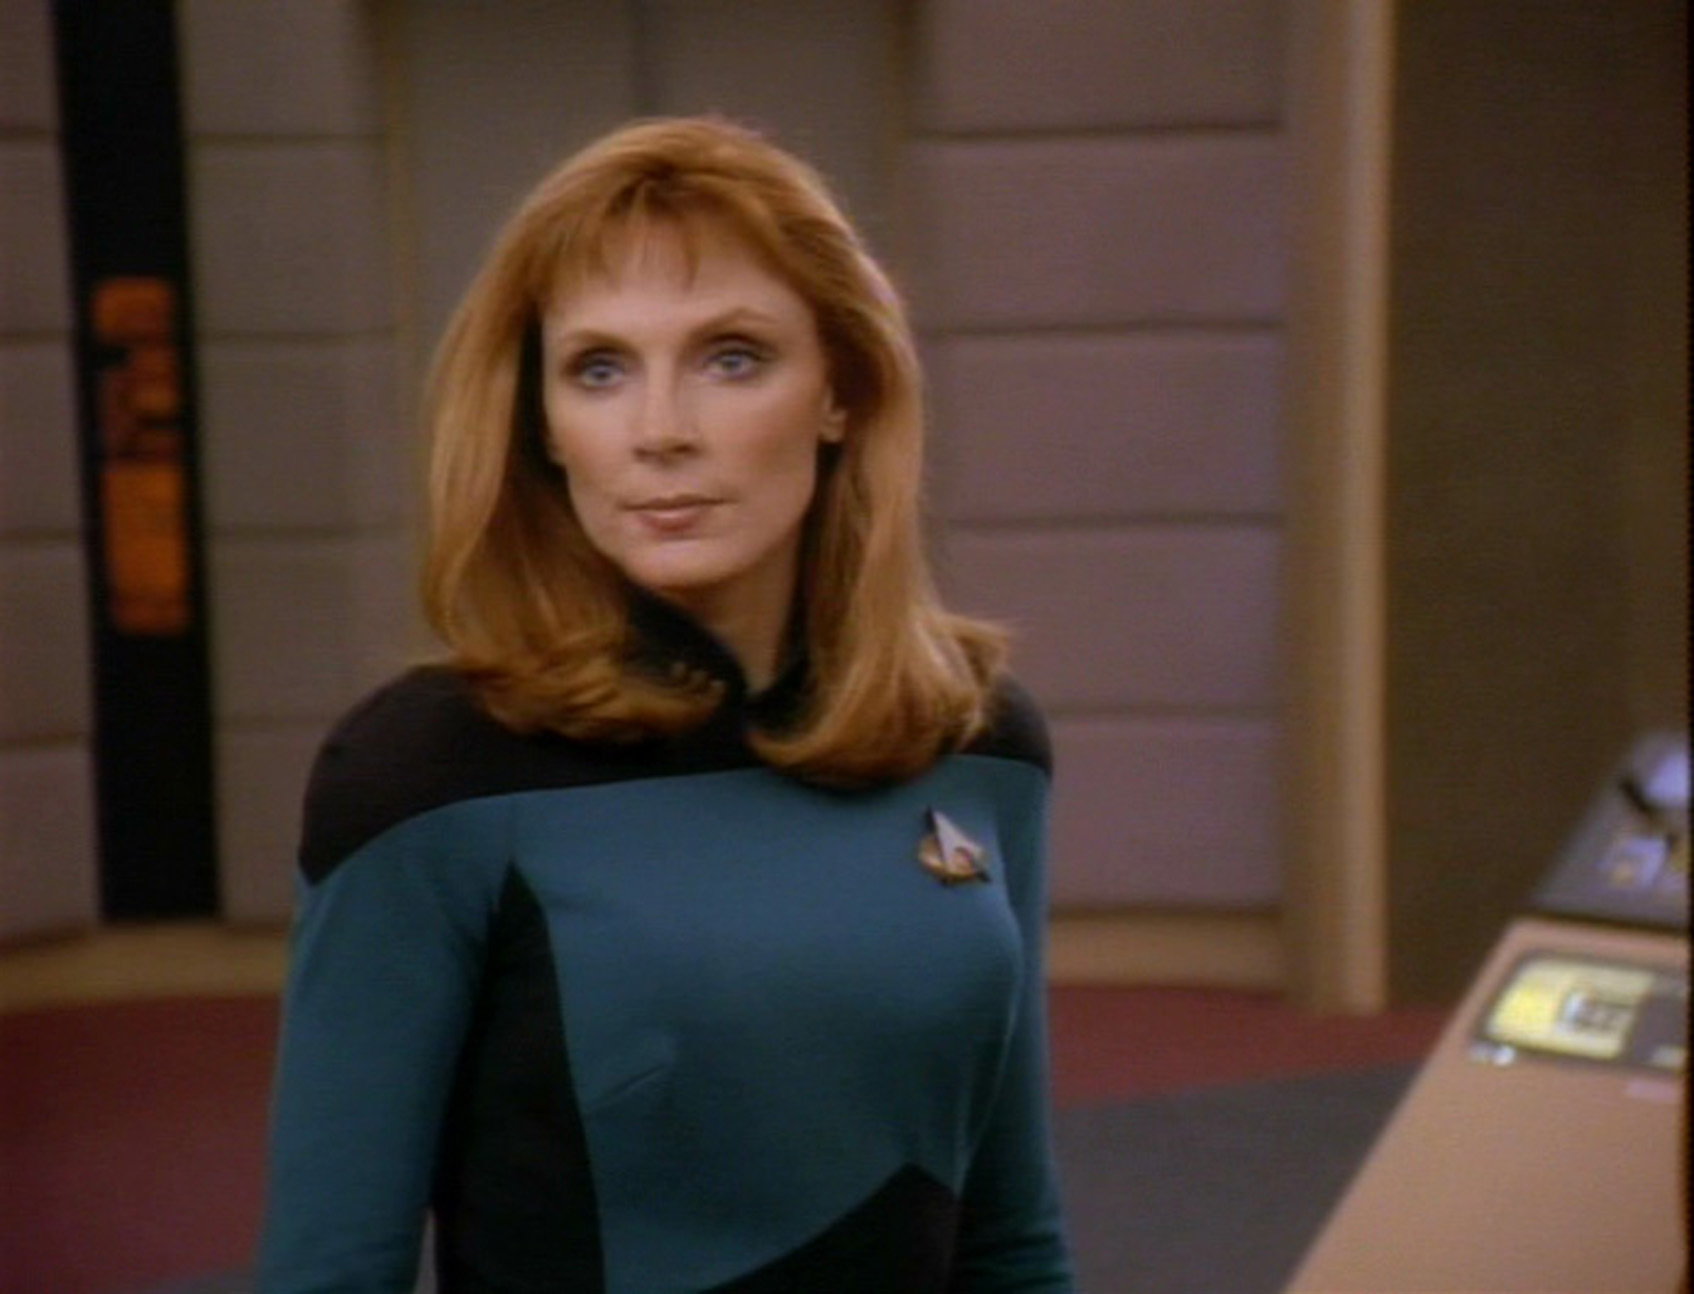 gates mcfadden Beverly crusher HD Wallpaper